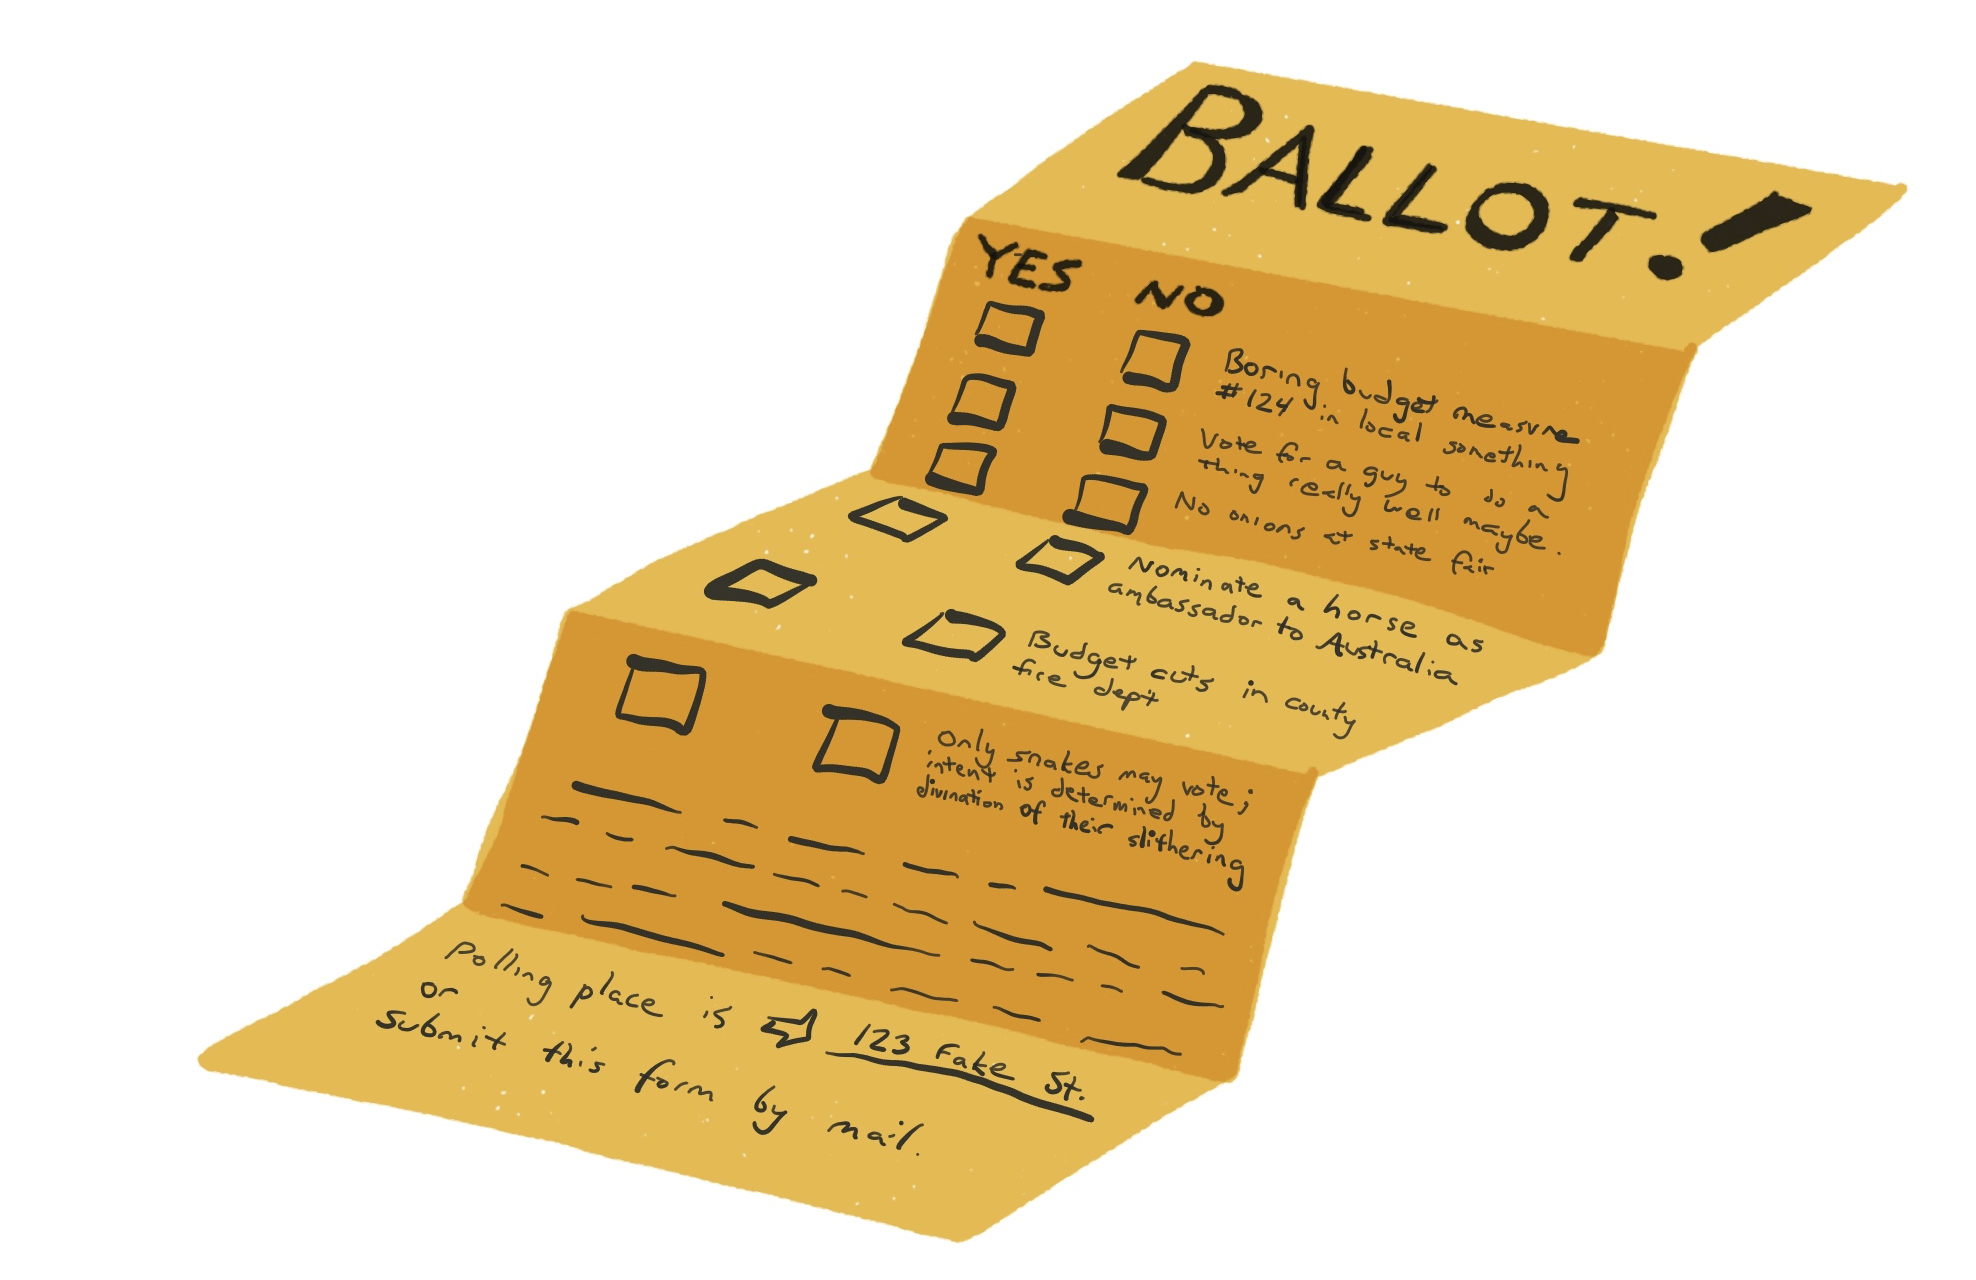 ballot-disqualifiers-1